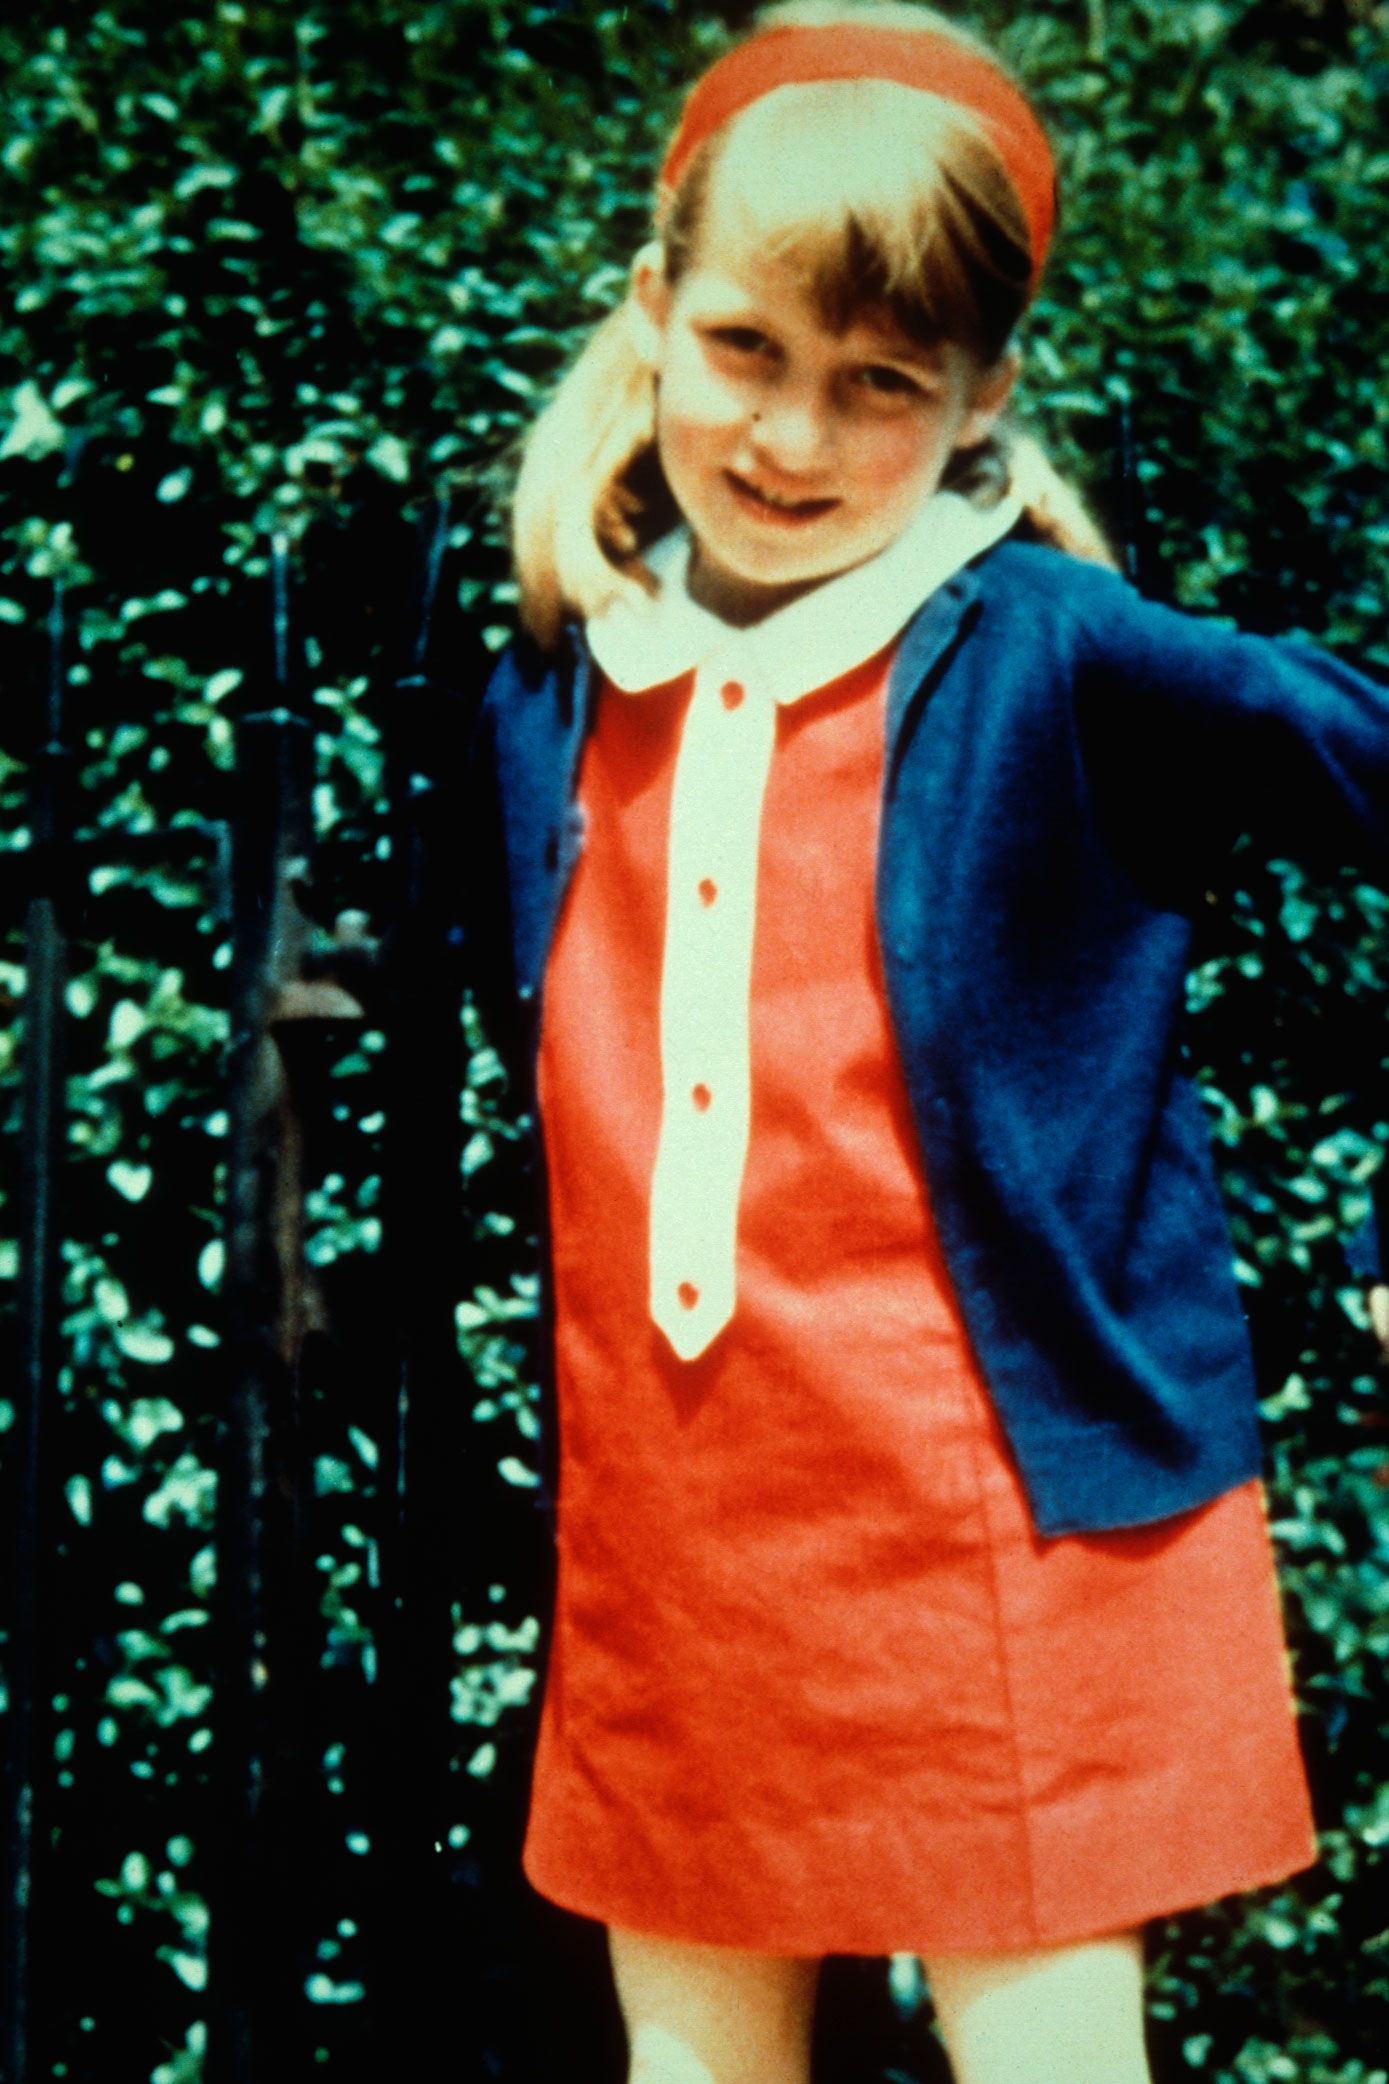 "<p>At one point, Diana attended the West Heath School in Kent, England. When she was 16, she <a href=""http://www.goodhousekeeping.com/life/entertainment/g2812/princess-diana-facts/"" target=""_blank"" data-tracking-id=""recirc-text-link"">failed two exams</a>. By today's standards, this doesn't seem that terrible, but her father wanted to enroll her in a Swedish boarding when he heard; she insisted on returning home instead. </p><p><strong data-redactor-tag=""strong"" data-verified=""redactor"">RELATED: </strong><a href=""http://www.redbookmag.com/life/g3667/diana-princess-of-wales/"" target=""_blank"" data-tracking-id=""recirc-text-link""><strong data-redactor-tag=""strong"" data-verified=""redactor"">20 Beautiful Photos of Princess Diana At Home</strong></a></p>"